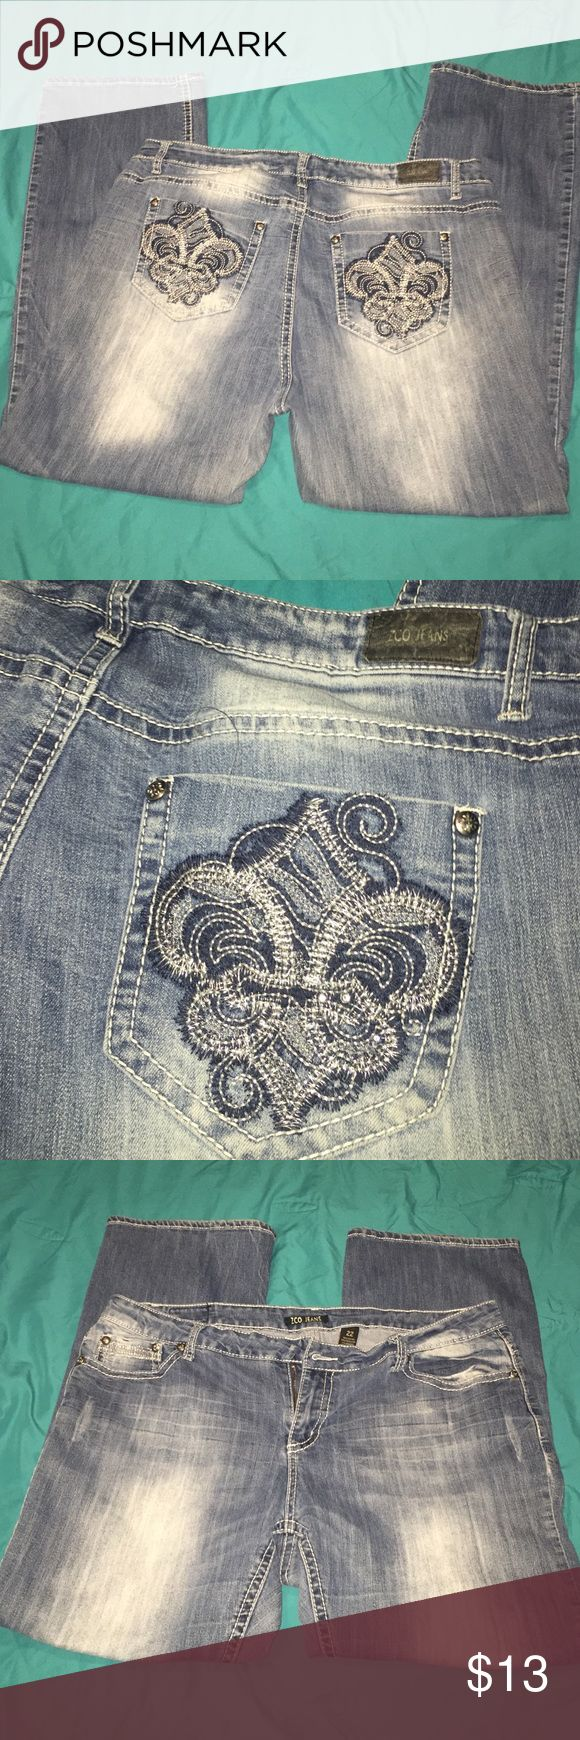 Zco jeans women's plus size 22 Zco jeans women's plus size 22. Missing button (as shown in picture) and I'm definitely no seamstress. These are one of my absolute favorite pairs of jeans and I hate to sell, but my loss is your gain! Super cute! ZCO Jeans Boot Cut